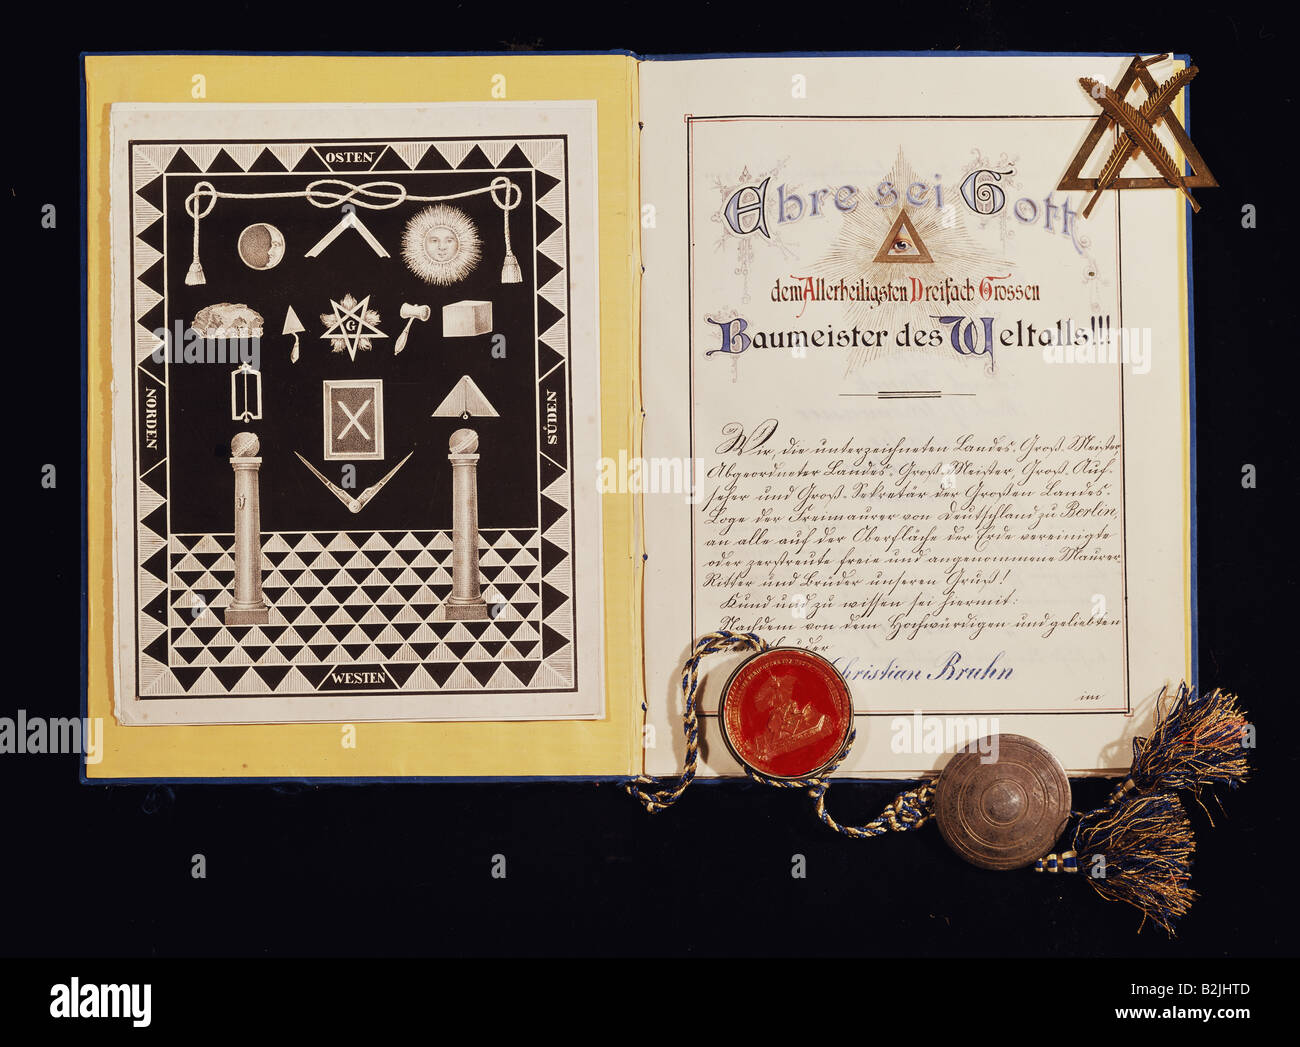 freemason, articles of incorporation, Johannesloge 'In Treue fest', Munich, Germany, 1903, private collection, - Stock Image